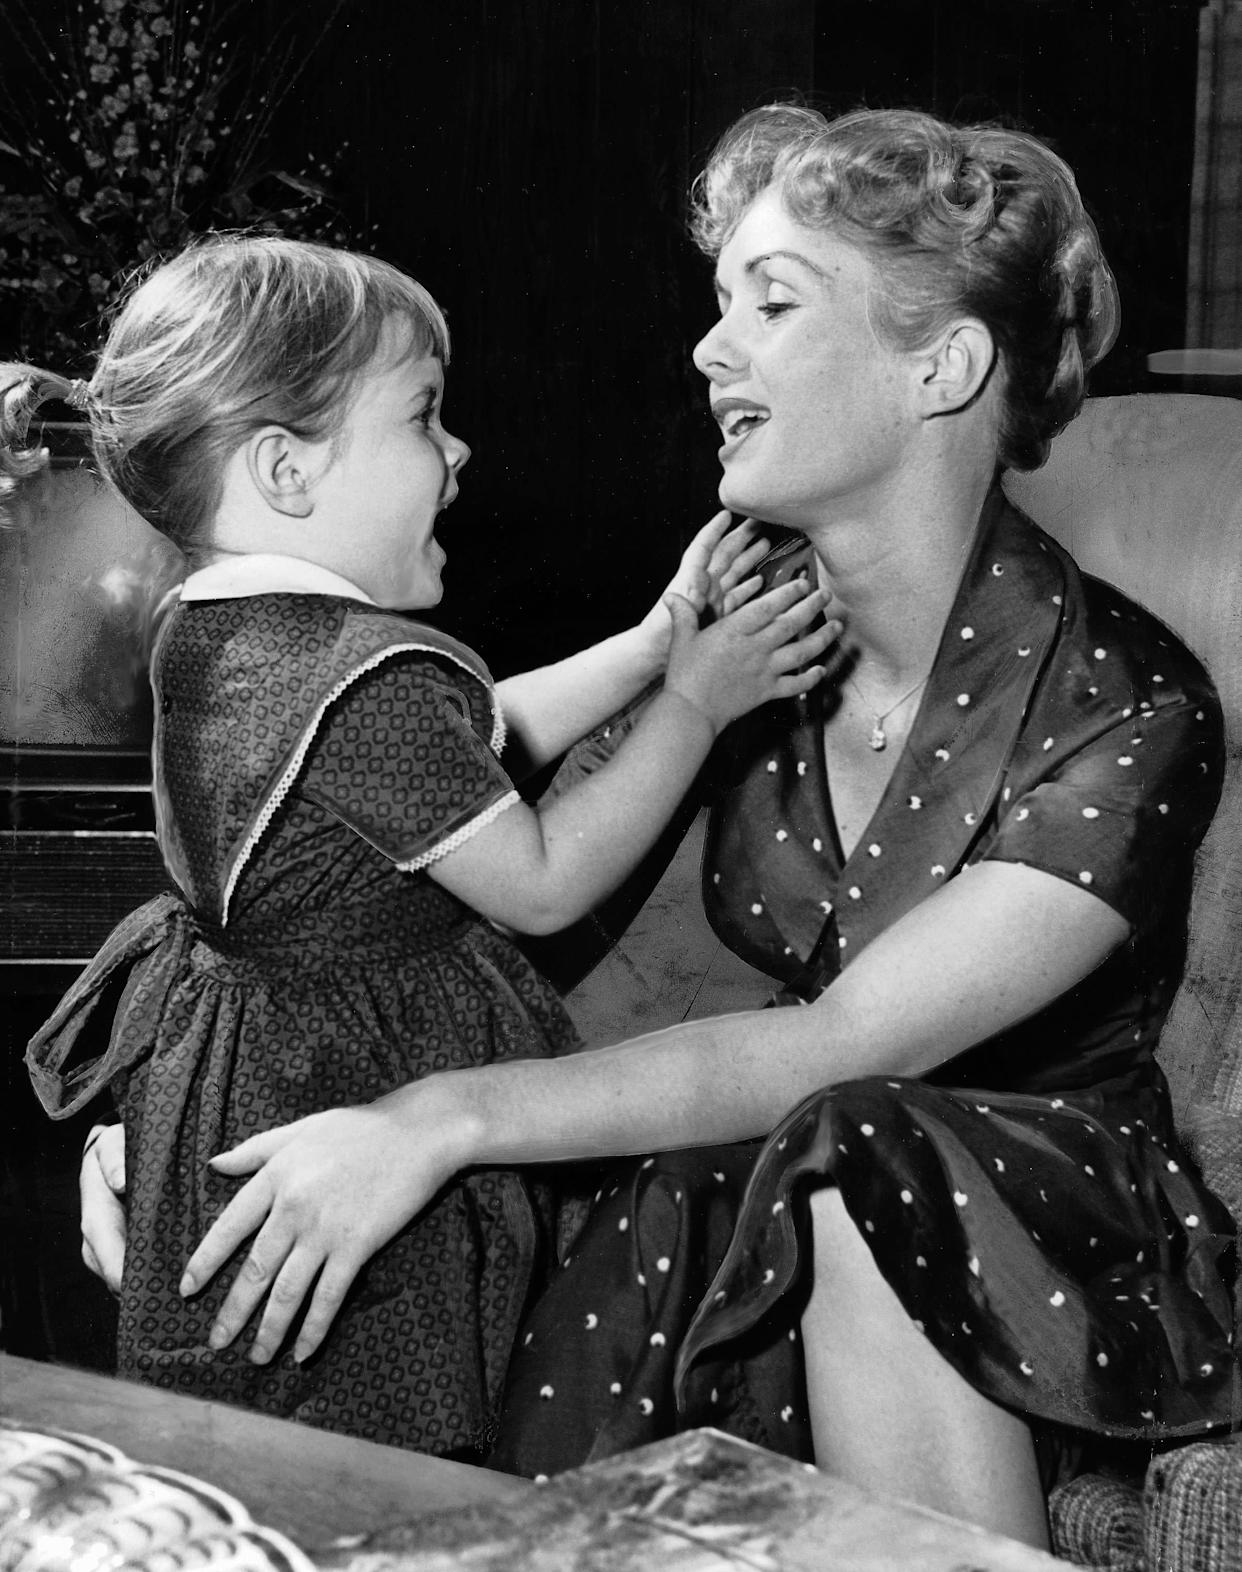 Debbie Reynolds with 3-year-old Carrie at home onNovember 16, 1959, in Los Angeles.